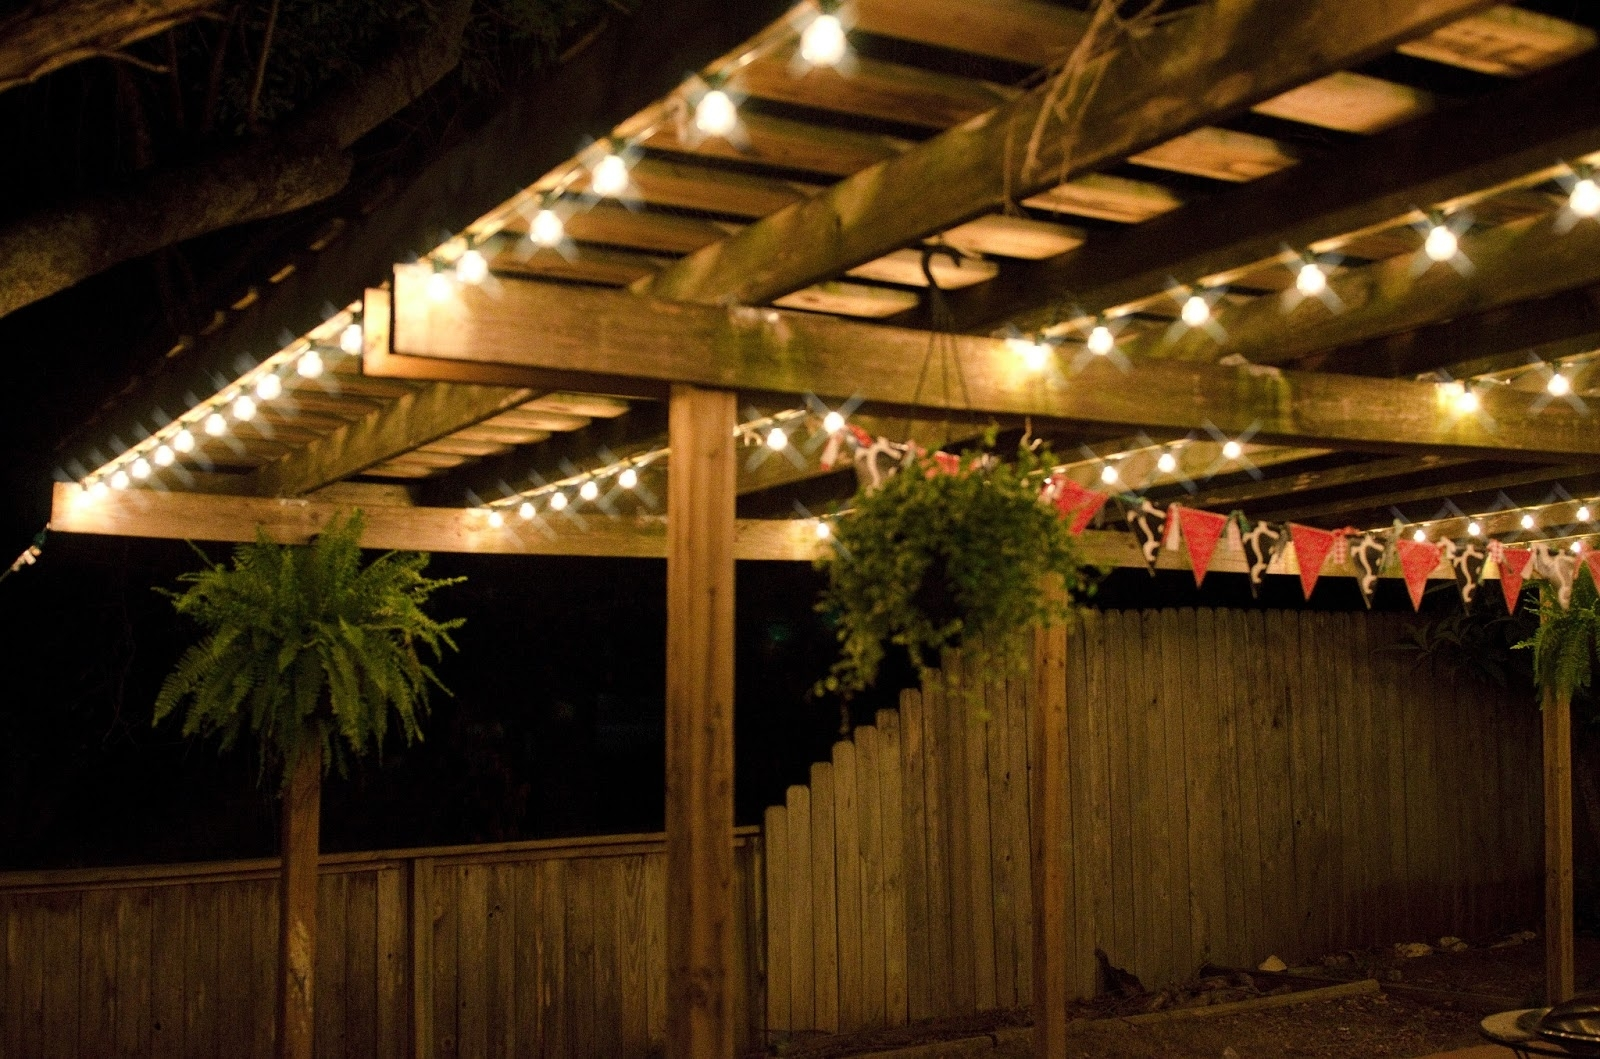 Amazing Of Hanging Patio Lights How To Hang String With Light Ideas Inside Outdoor Patio Hanging String Lights (View 5 of 15)